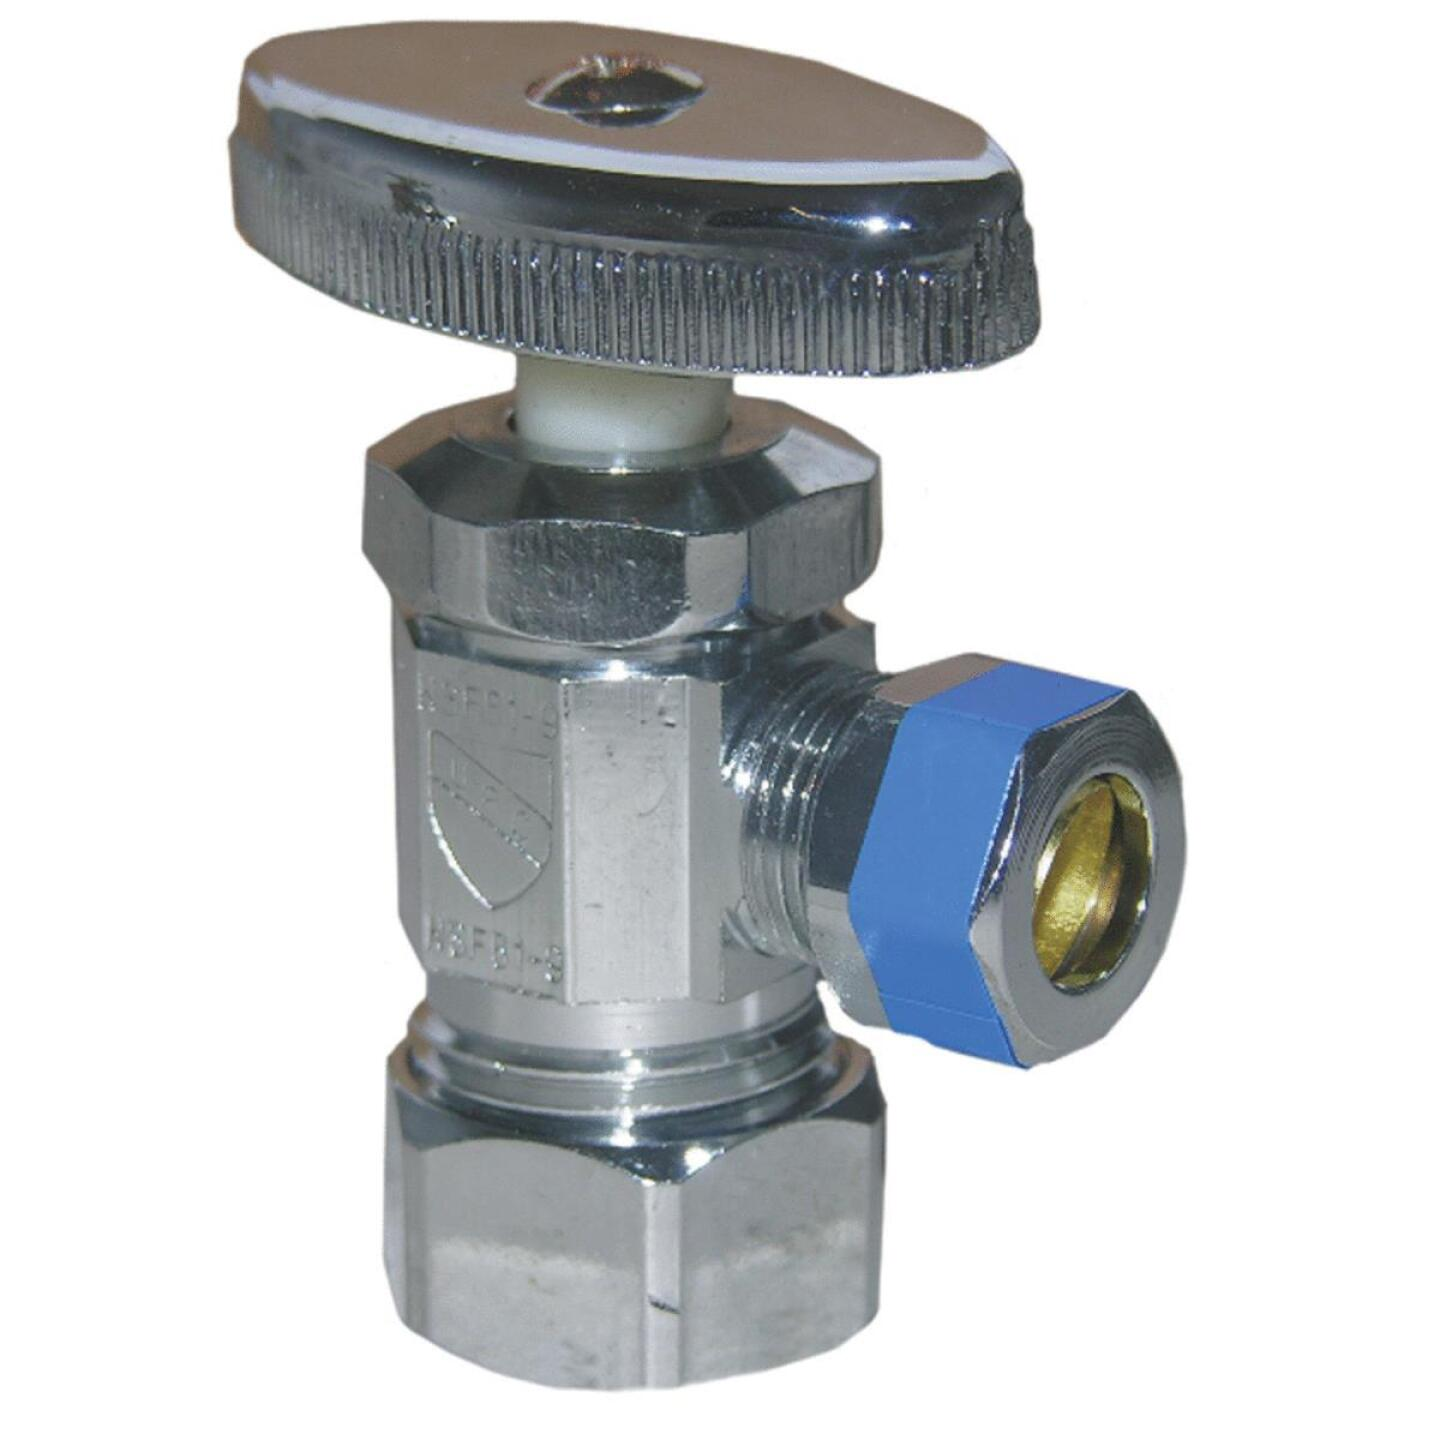 Lasco 5/8 In. Comp Inlet x 3/8 In. Comp Outlet Multi-Turn Style Angle Valve Image 1